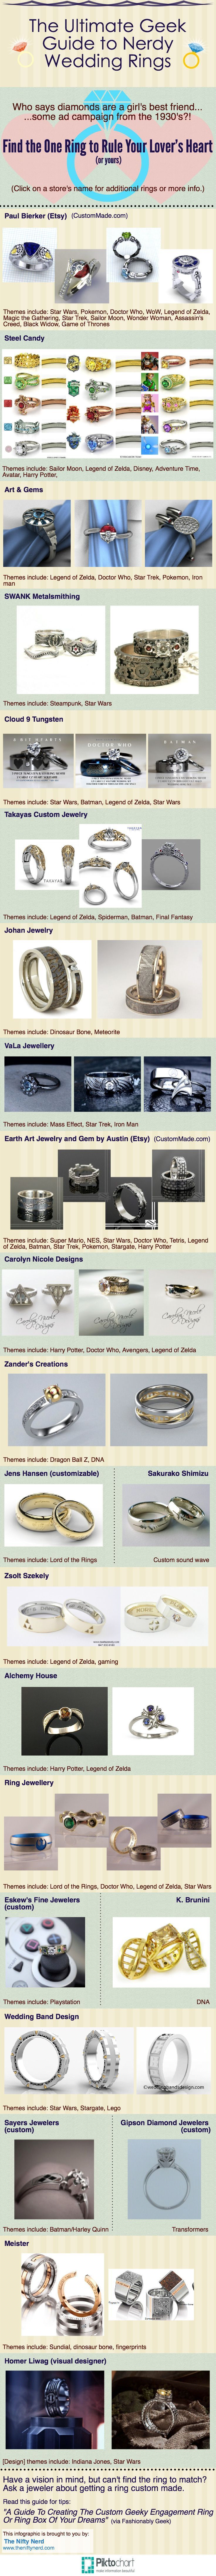 Best 25 Harry potter wedding rings ideas on Pinterest